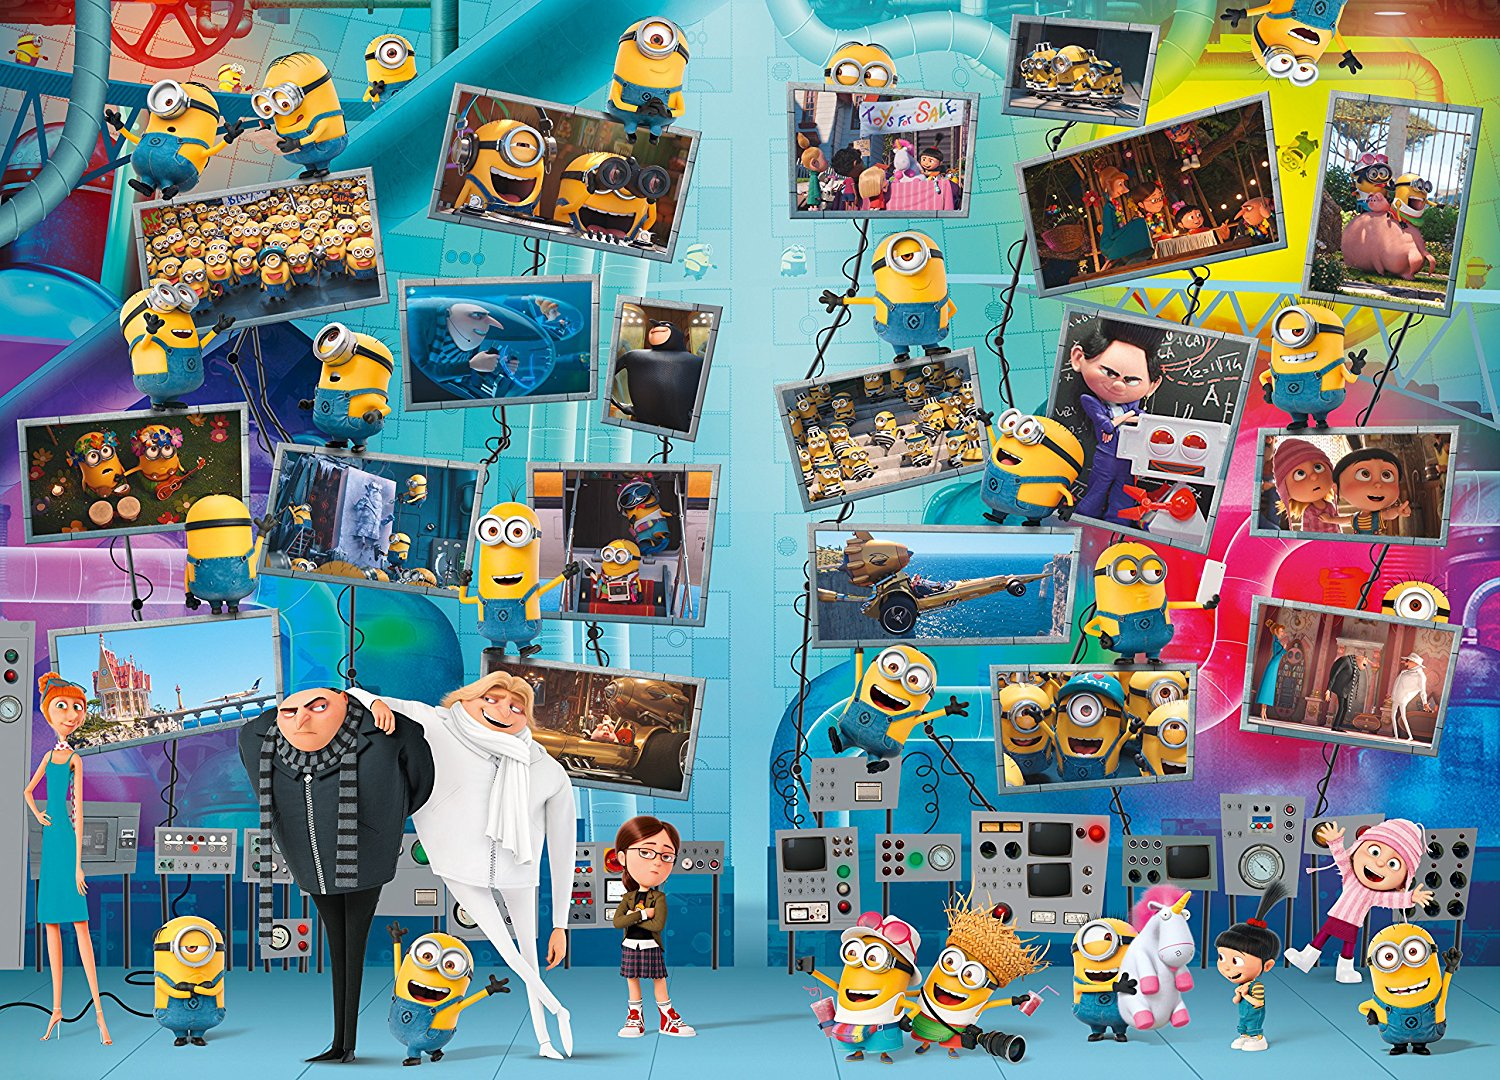 minions 9000 teile ravensburger puzzle online kaufen. Black Bedroom Furniture Sets. Home Design Ideas